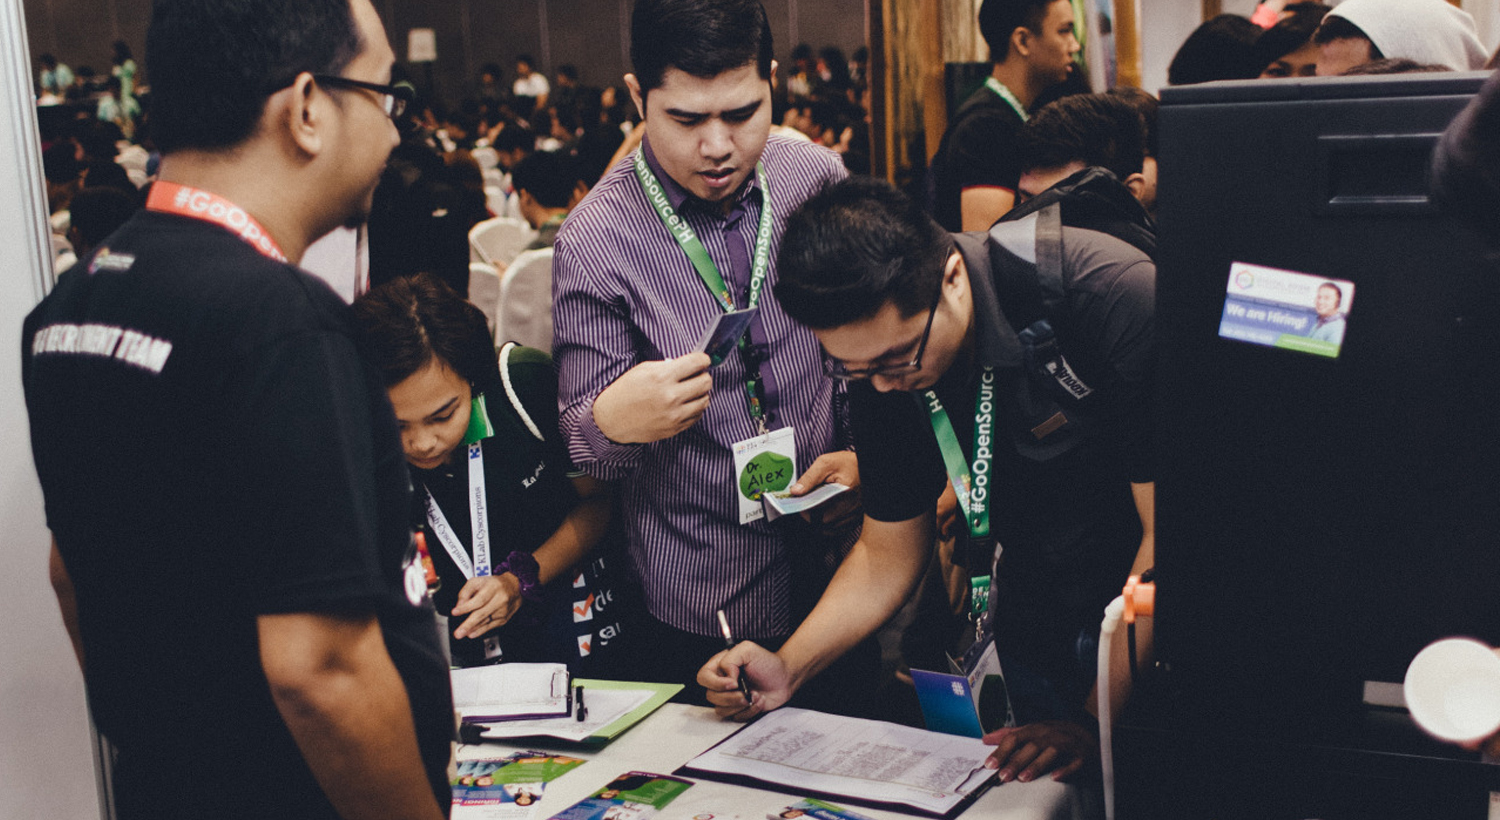 People signing up for an email list during a trade show